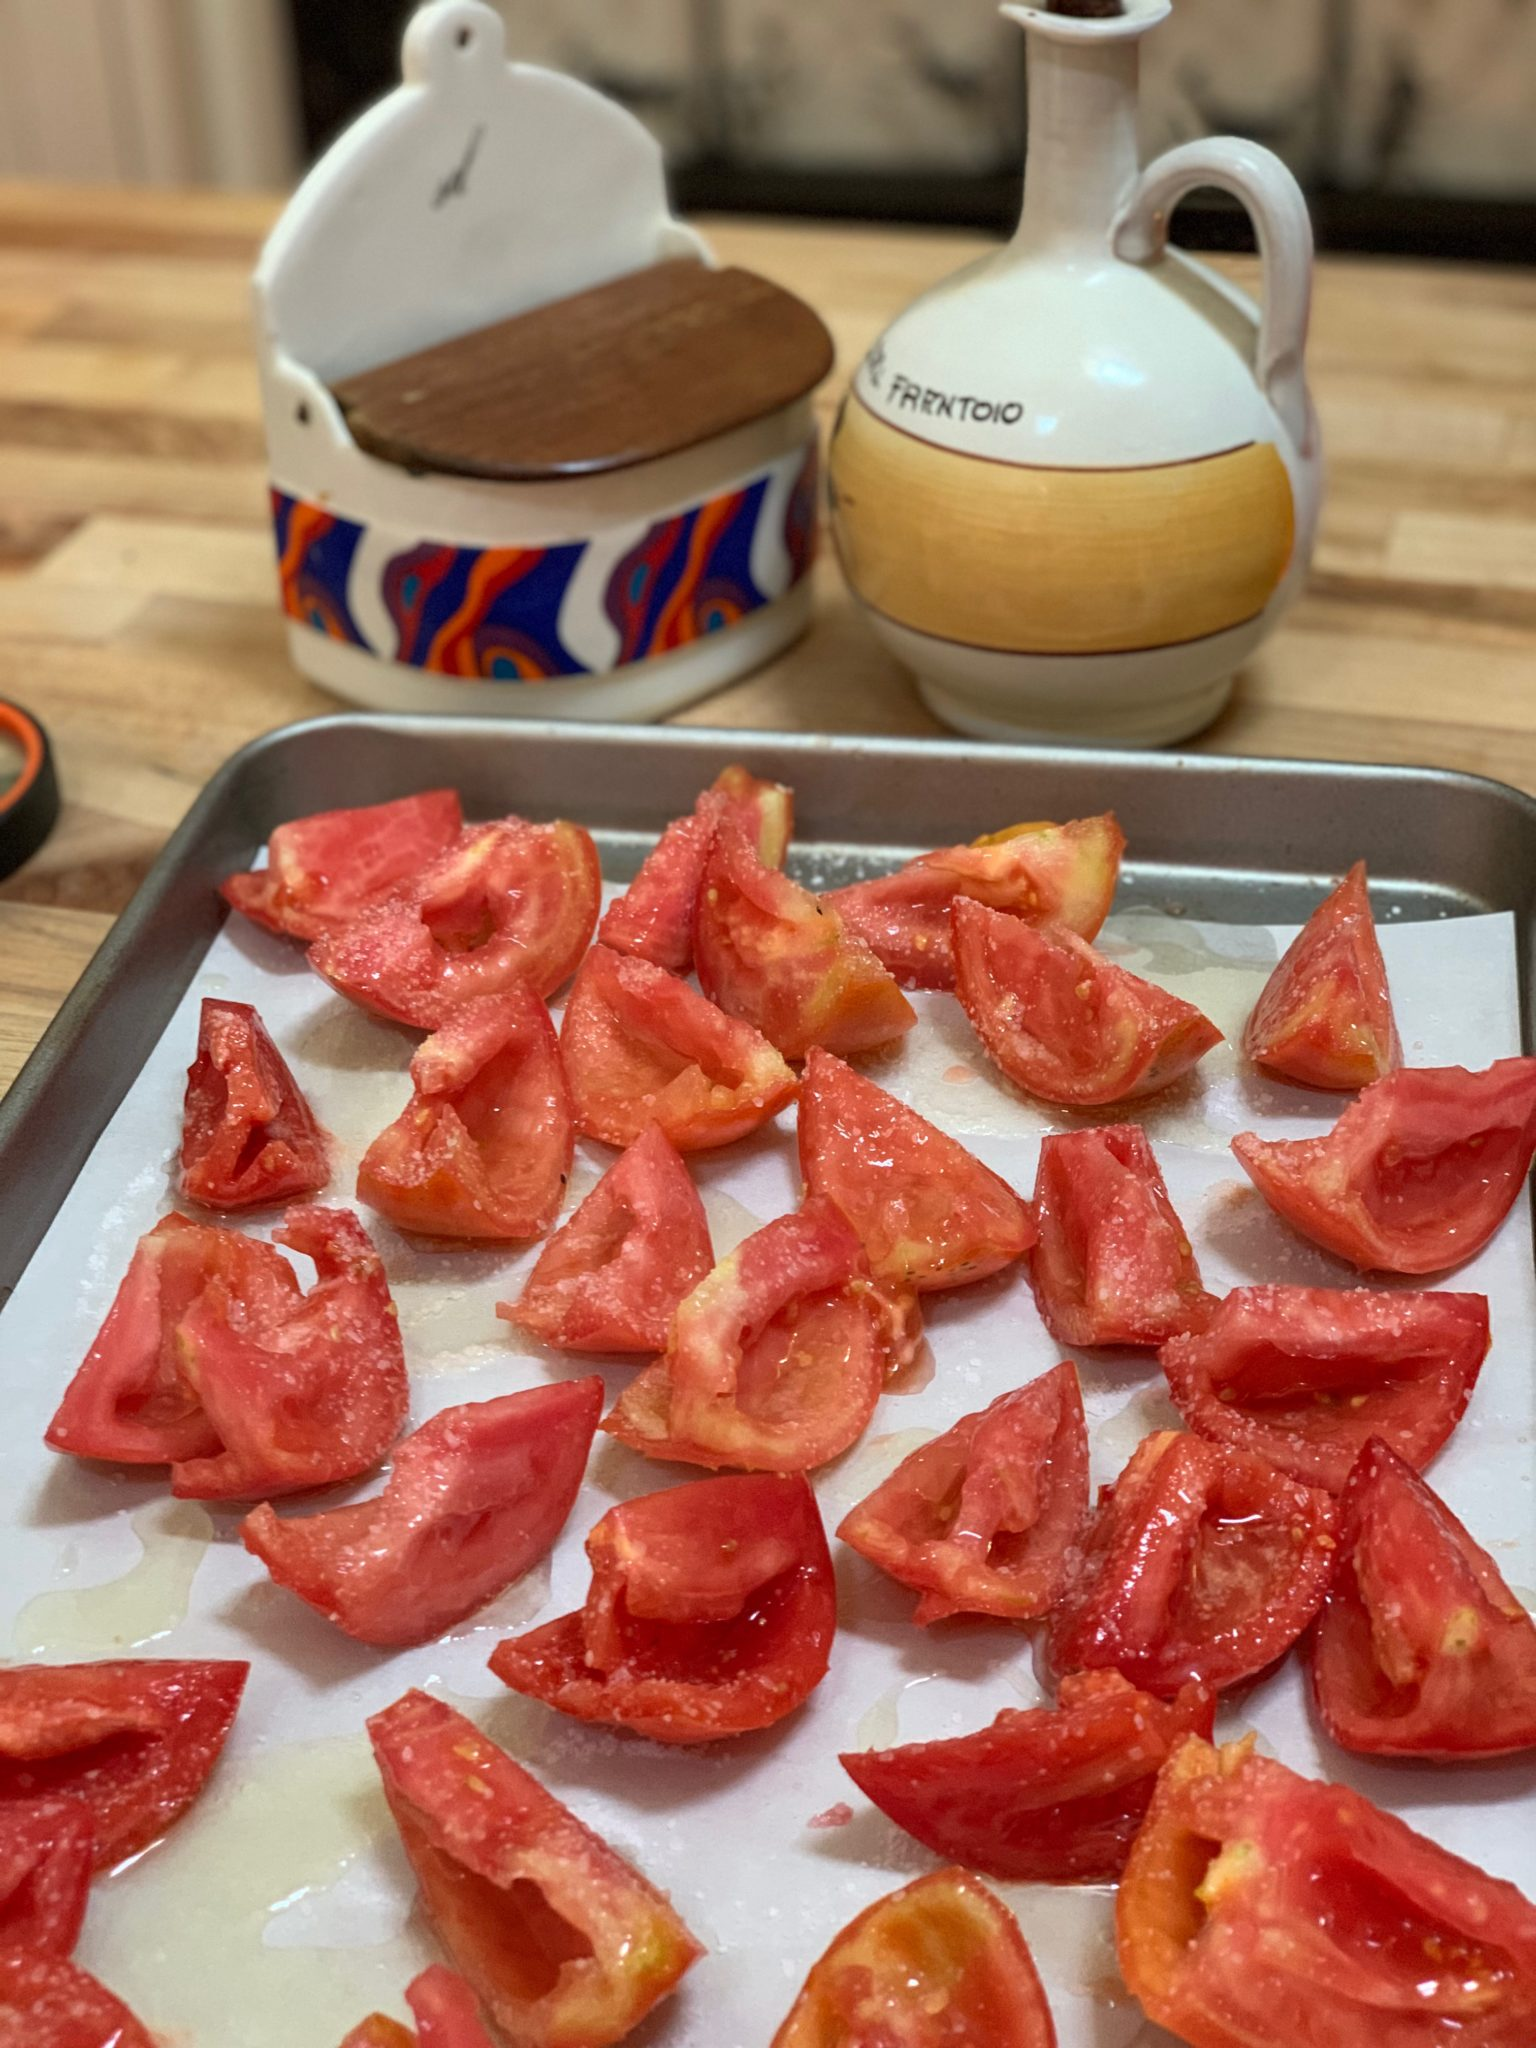 Tomatoes ready to slow roast